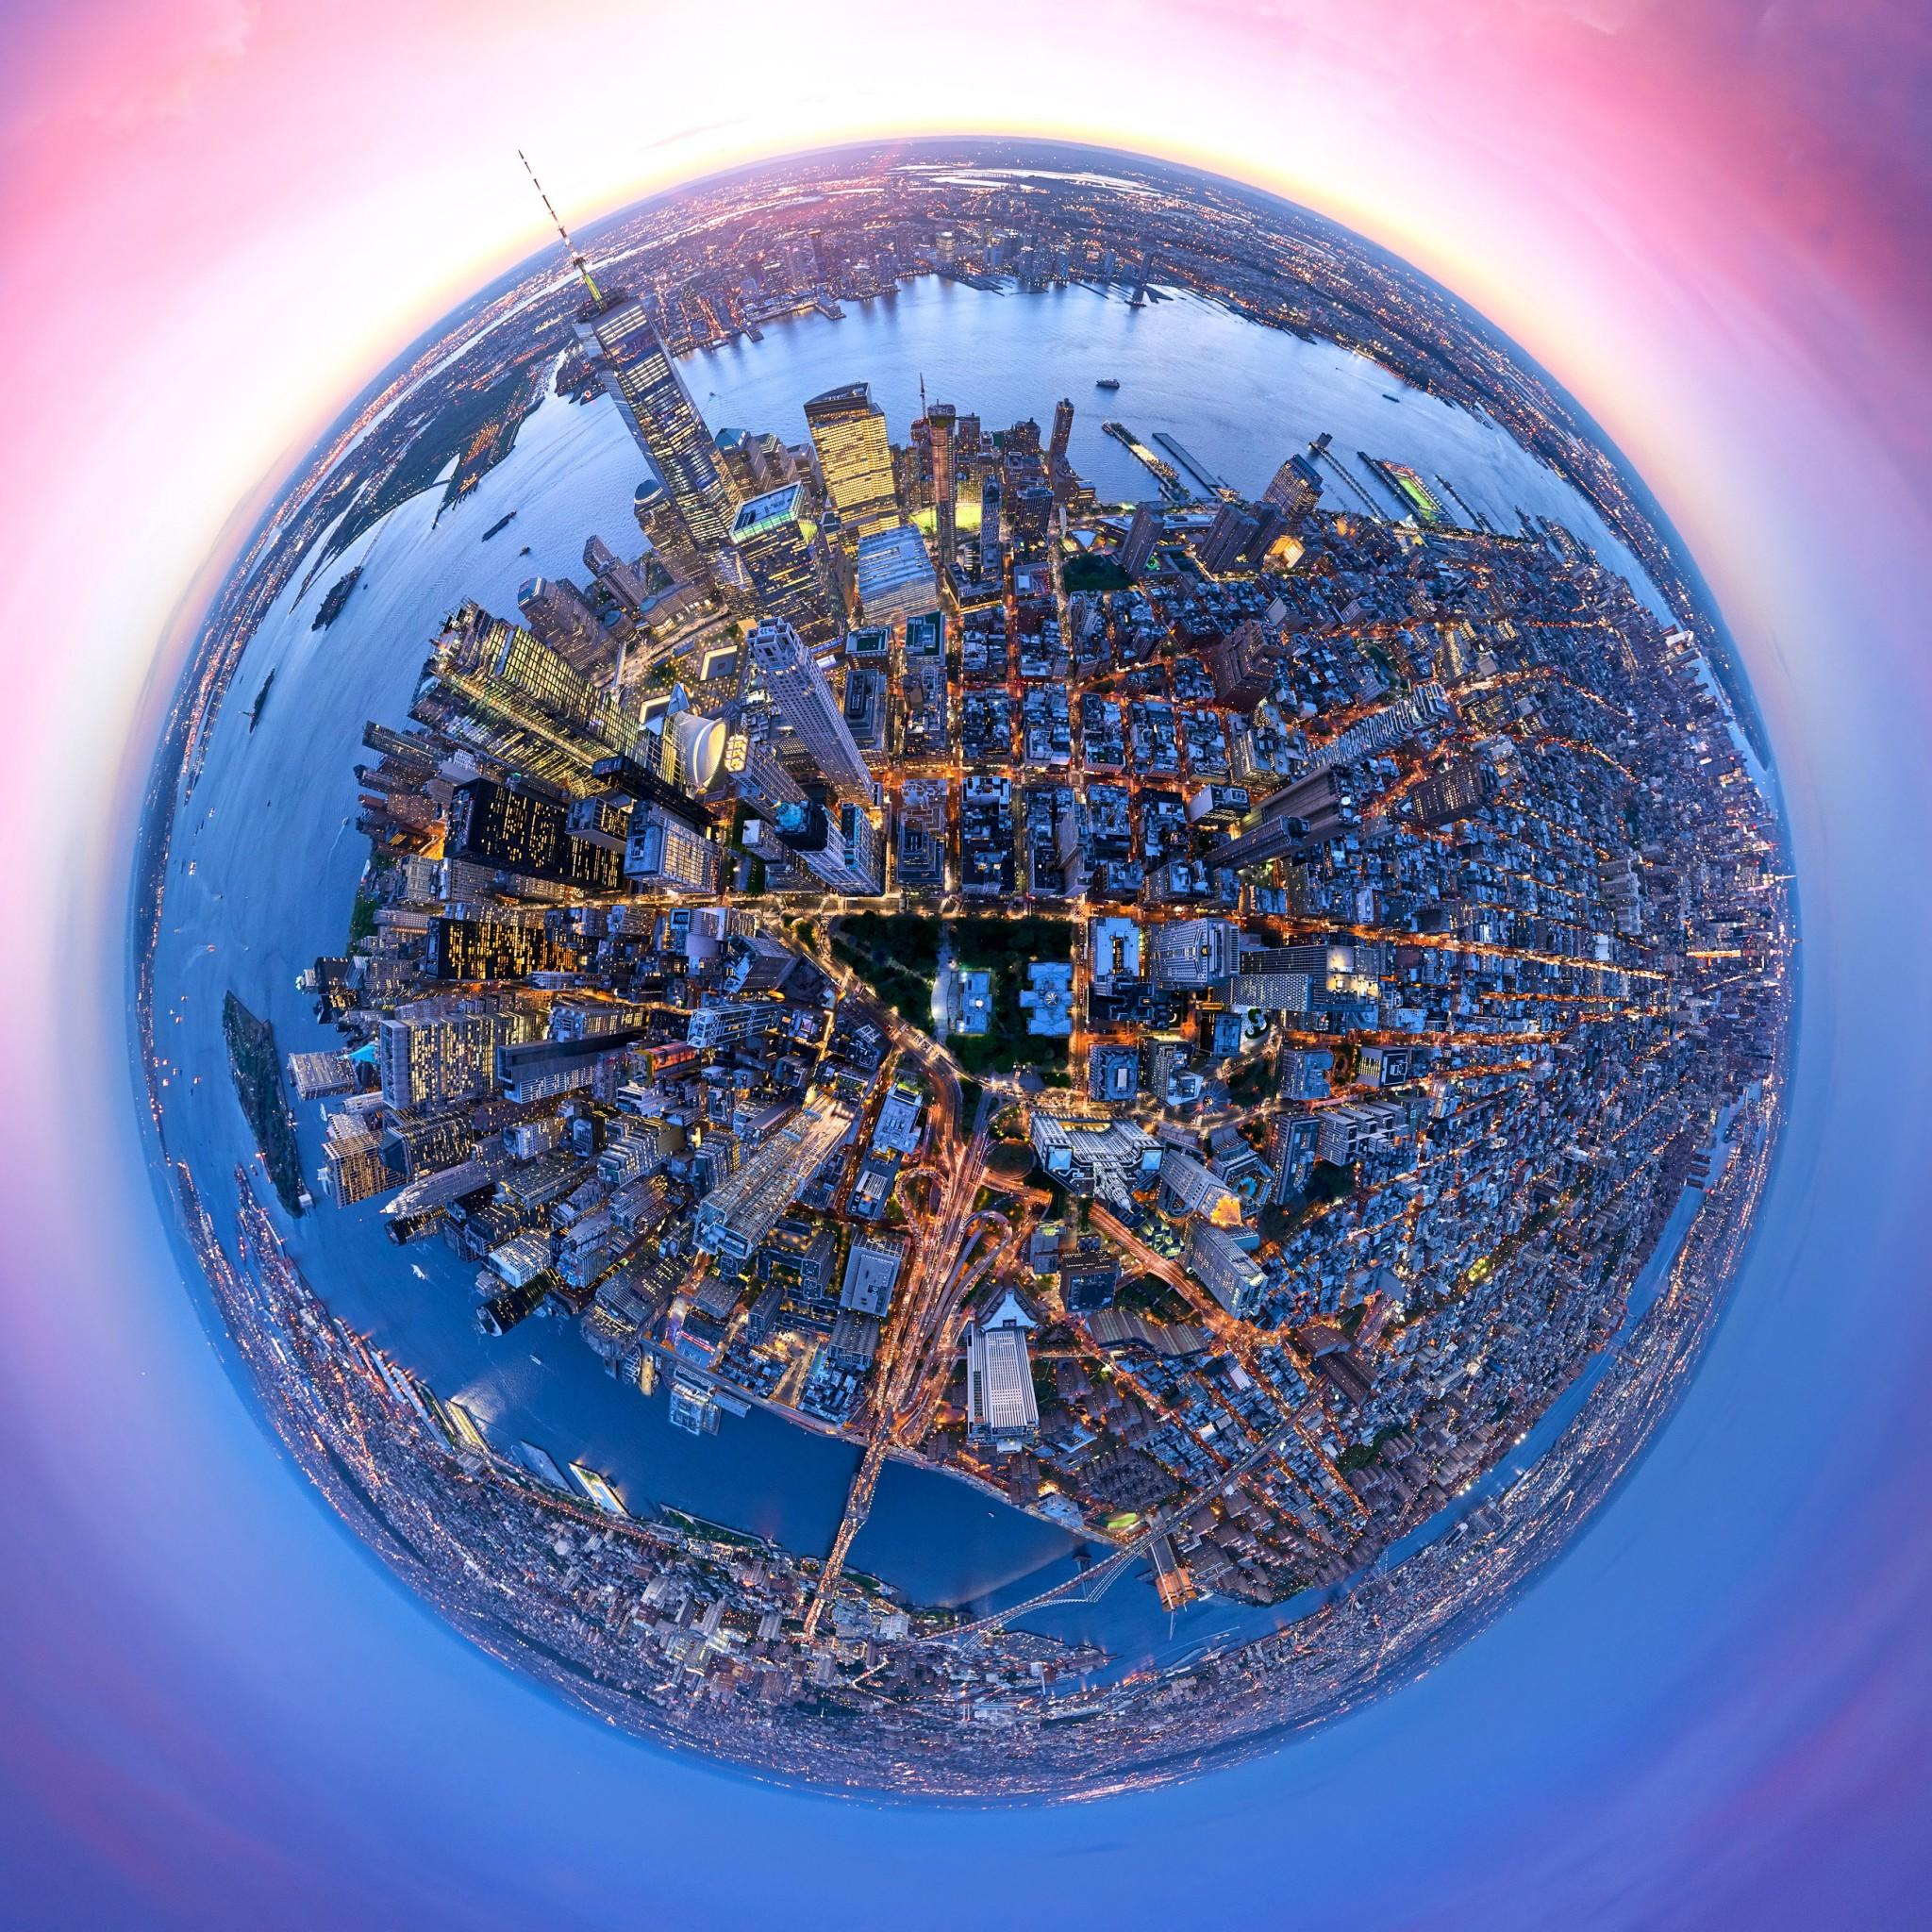 <p>In all of the works, the bright lights of New York glitter across the skyline, making its skyscrapers and life below pop. Andrew Griffiths, who has been working as an aerial photographer for the past 16 years, captured the unique photography series. (Photo: Andrew Griffiths/Lensaloft/Caters) </p>